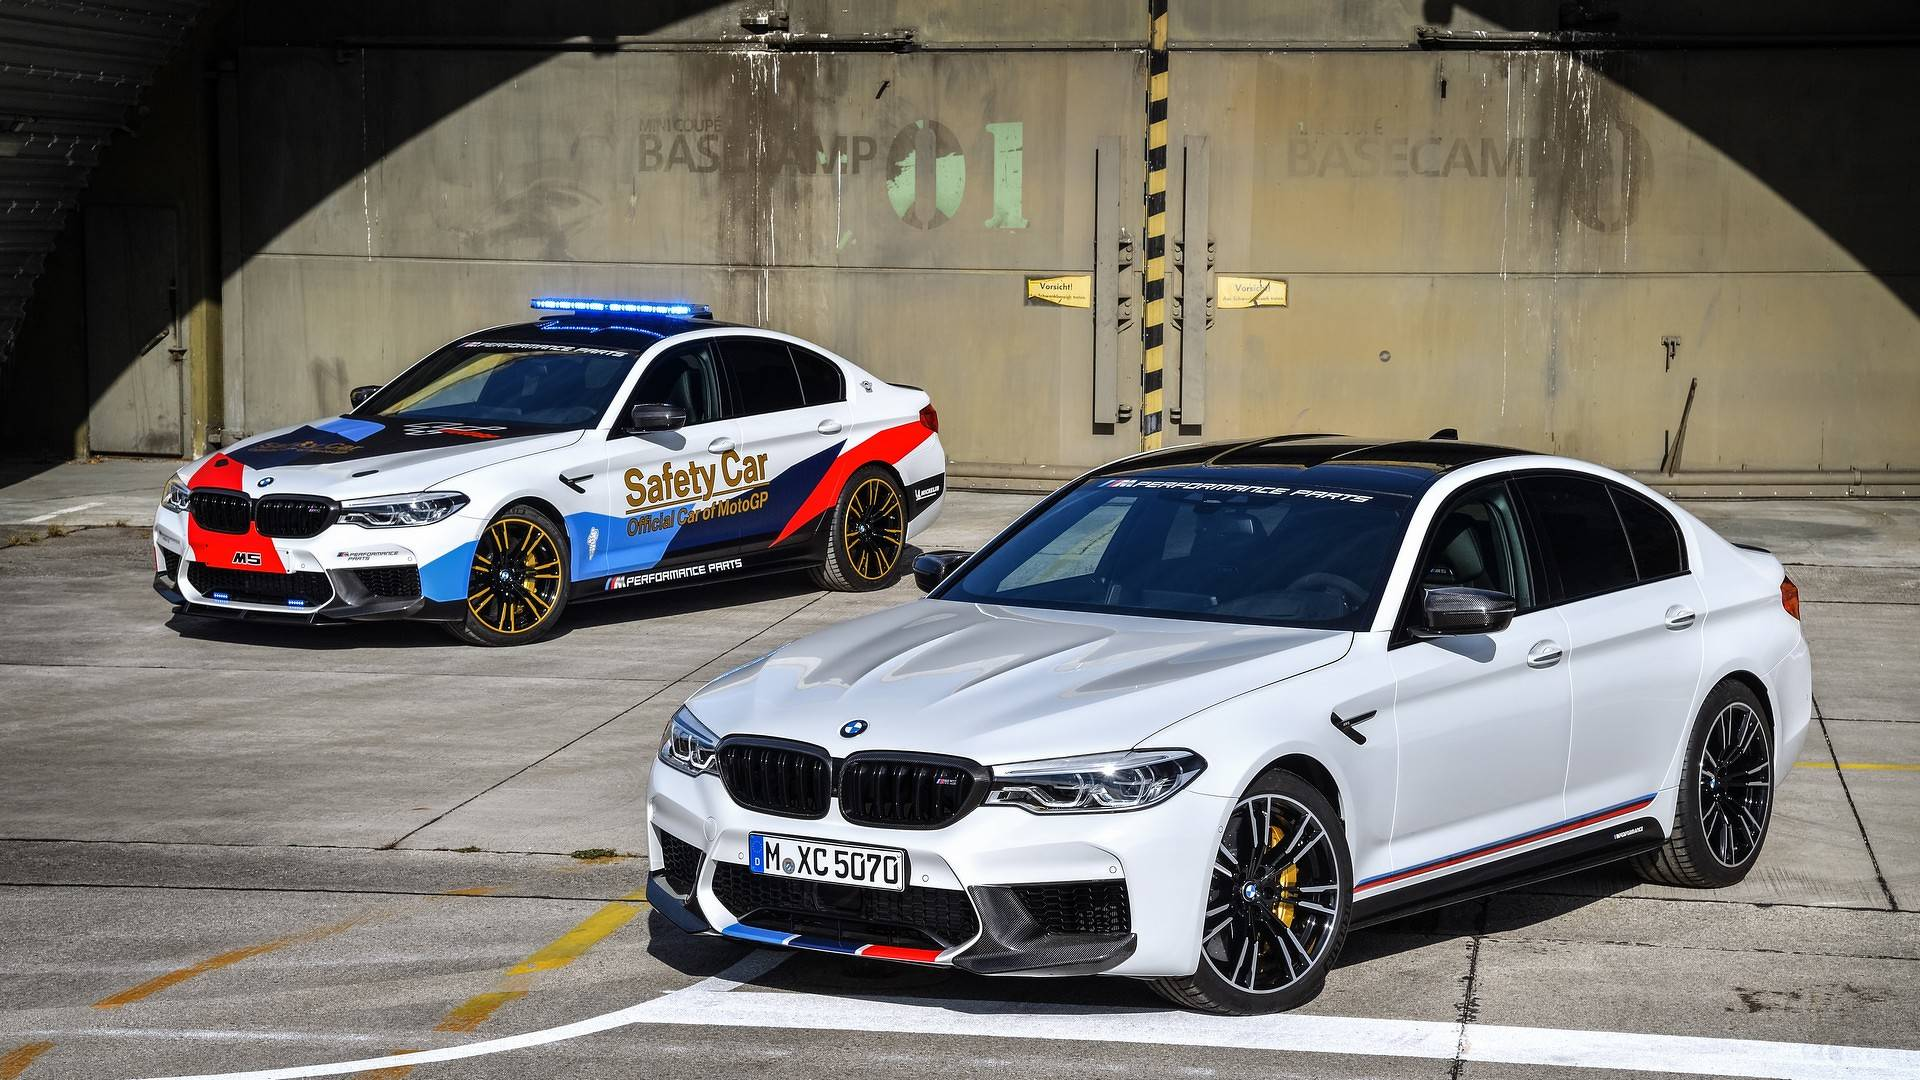 bmw-m5-motogp-safety-car (11)